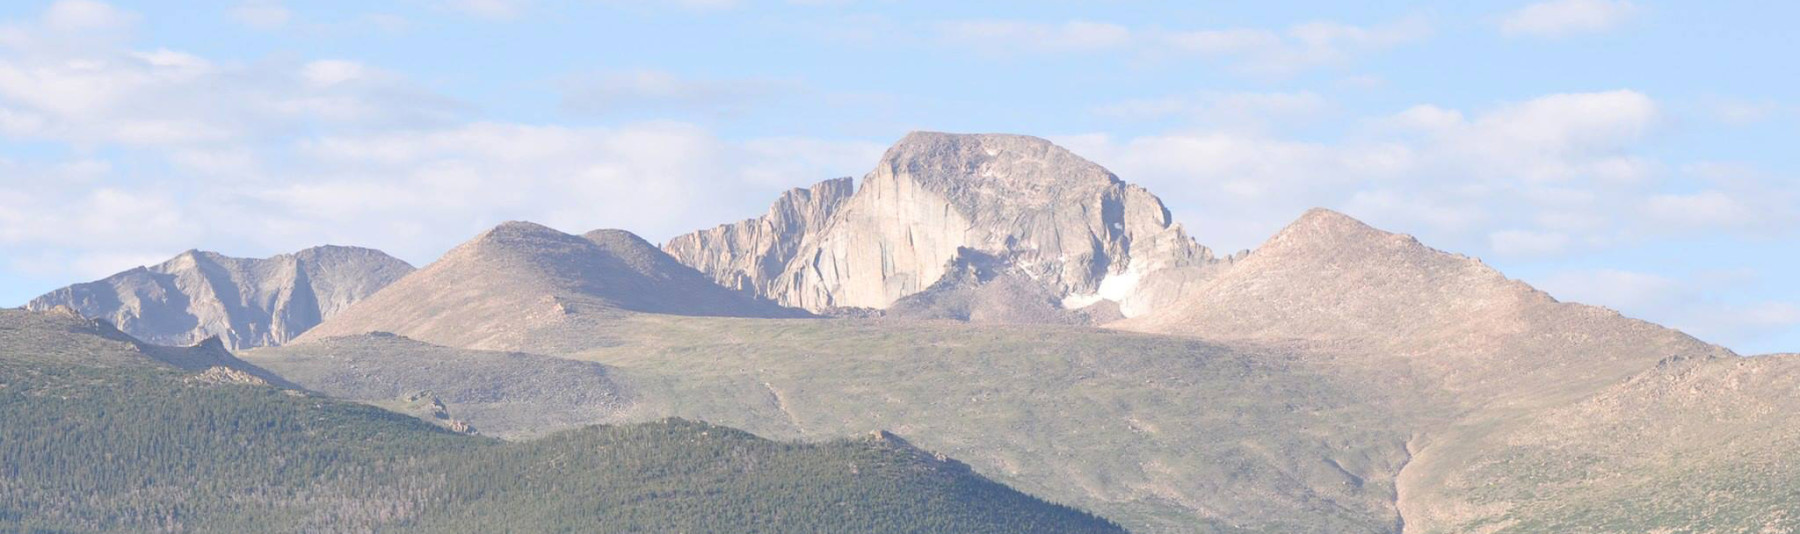 longs-peak-resume-header-crop